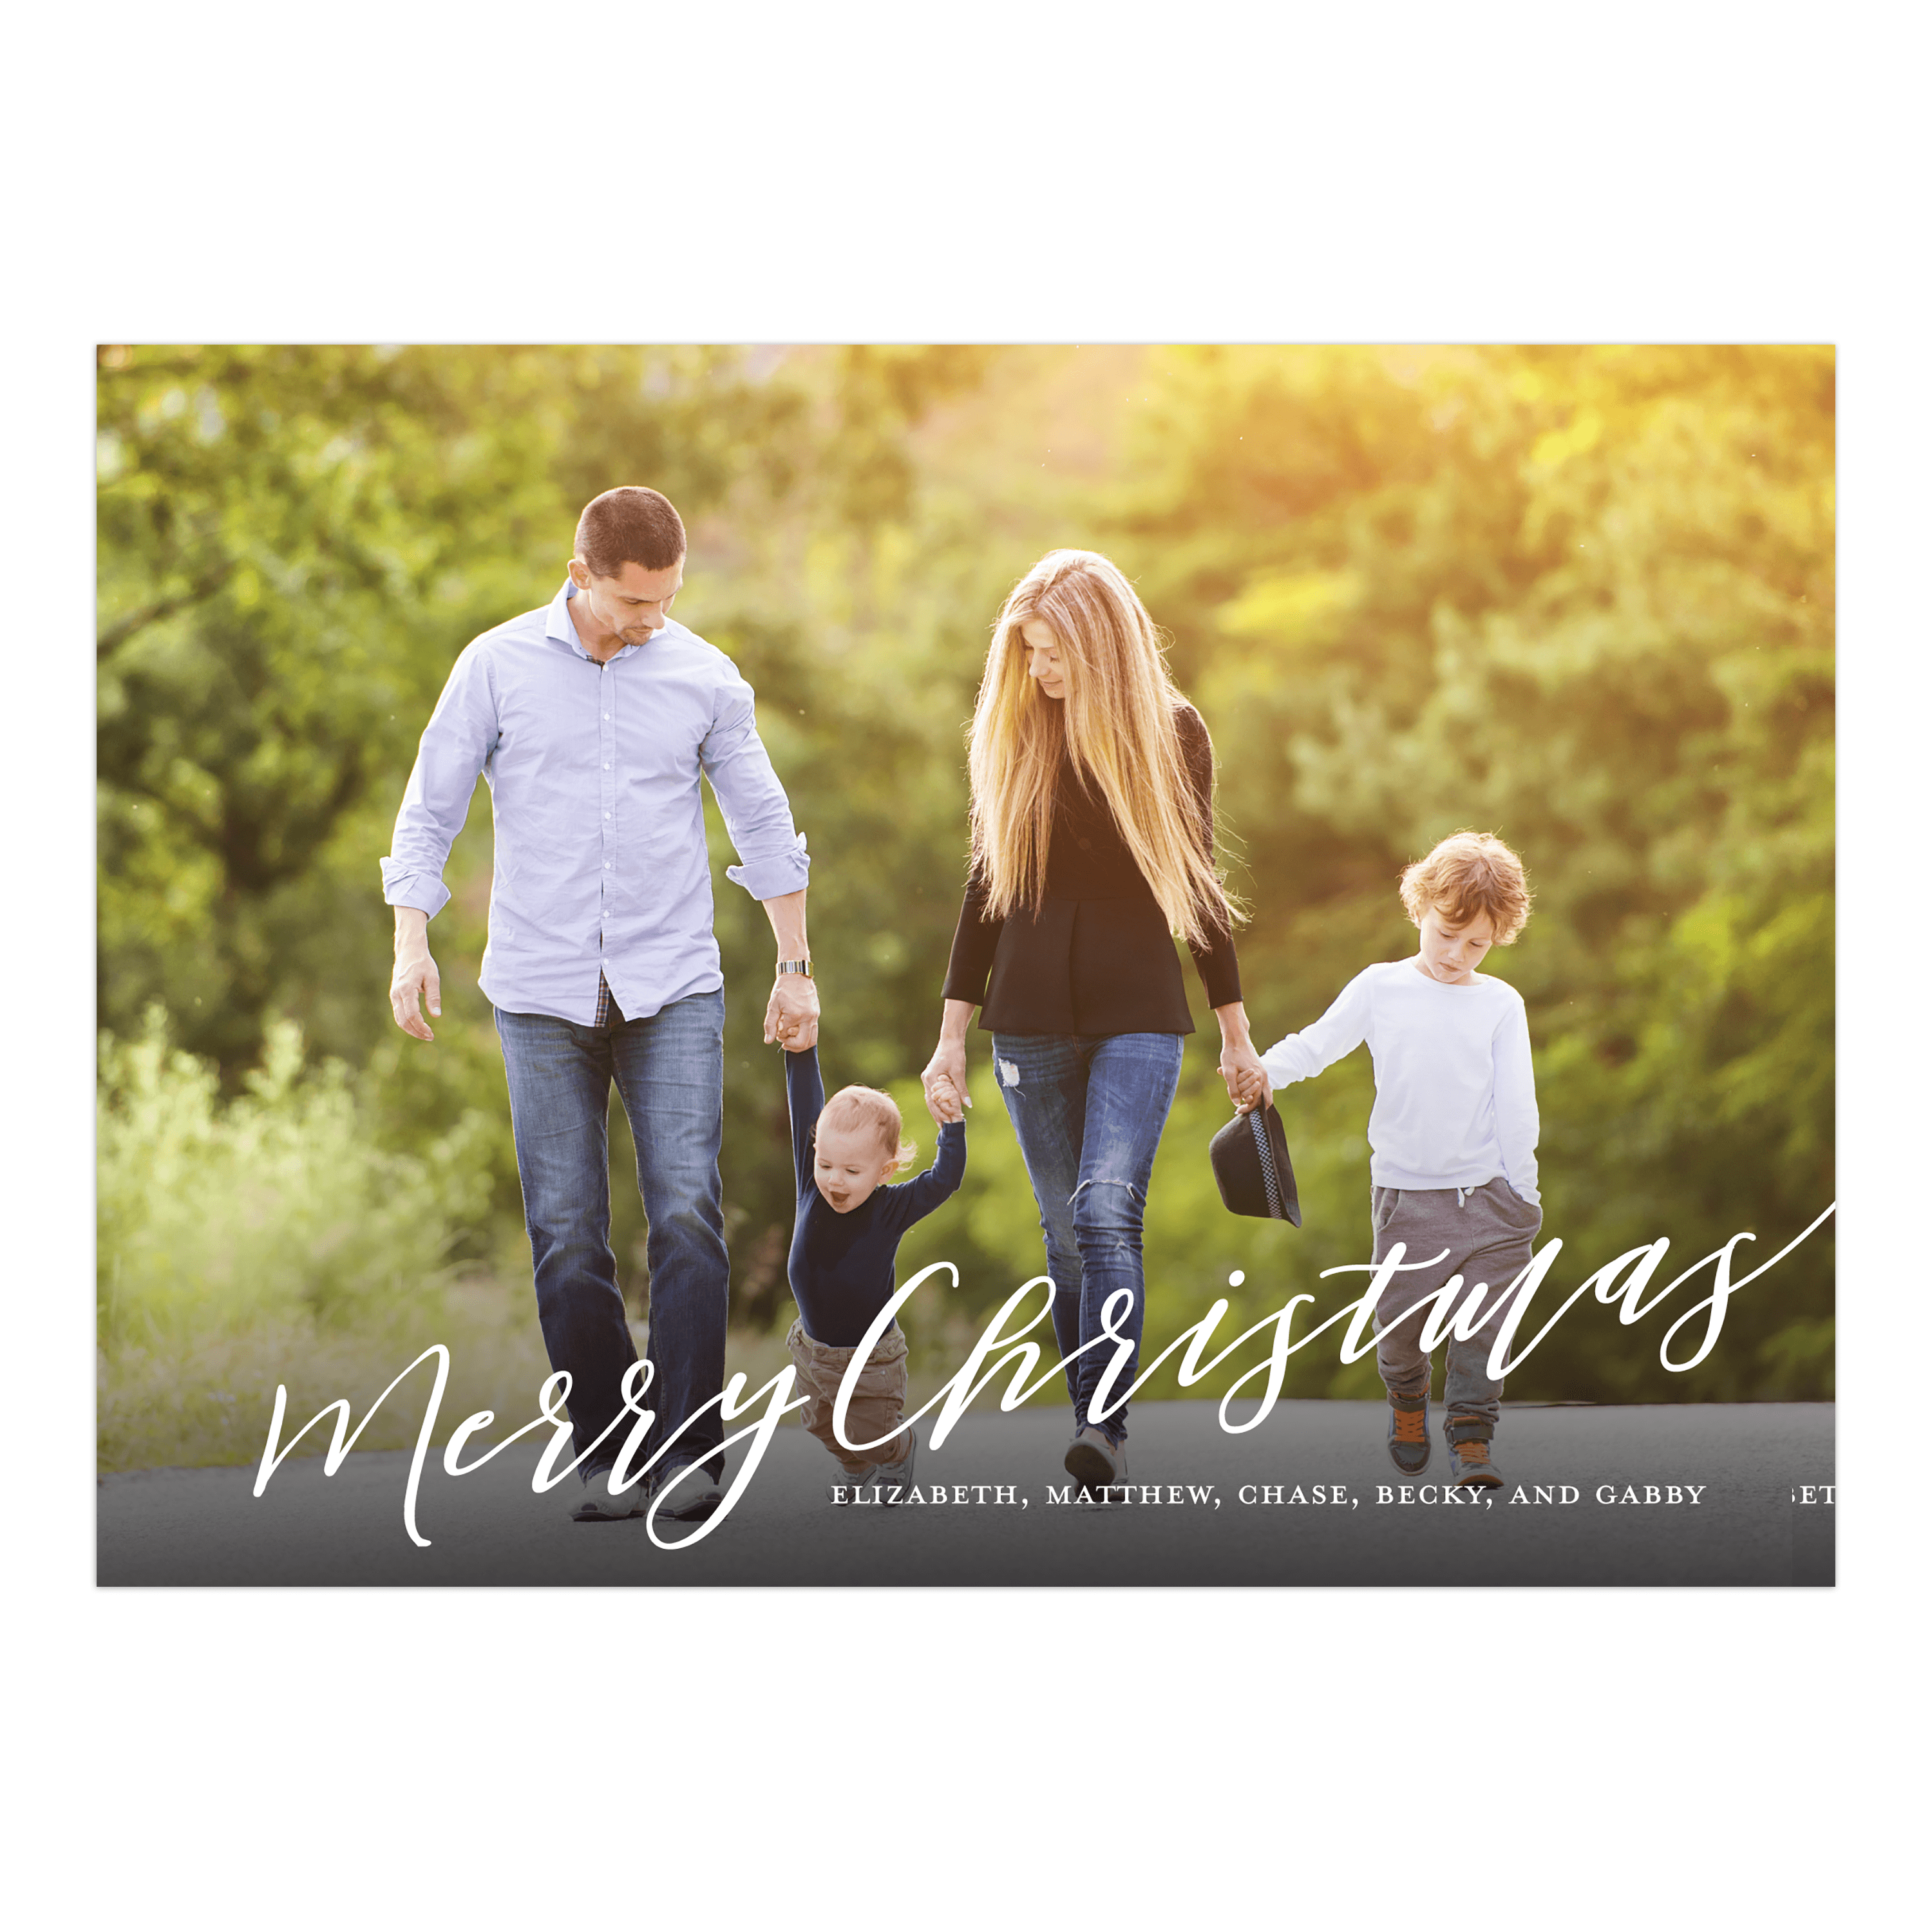 Personalized Holiday Photo Card - Christmas Script